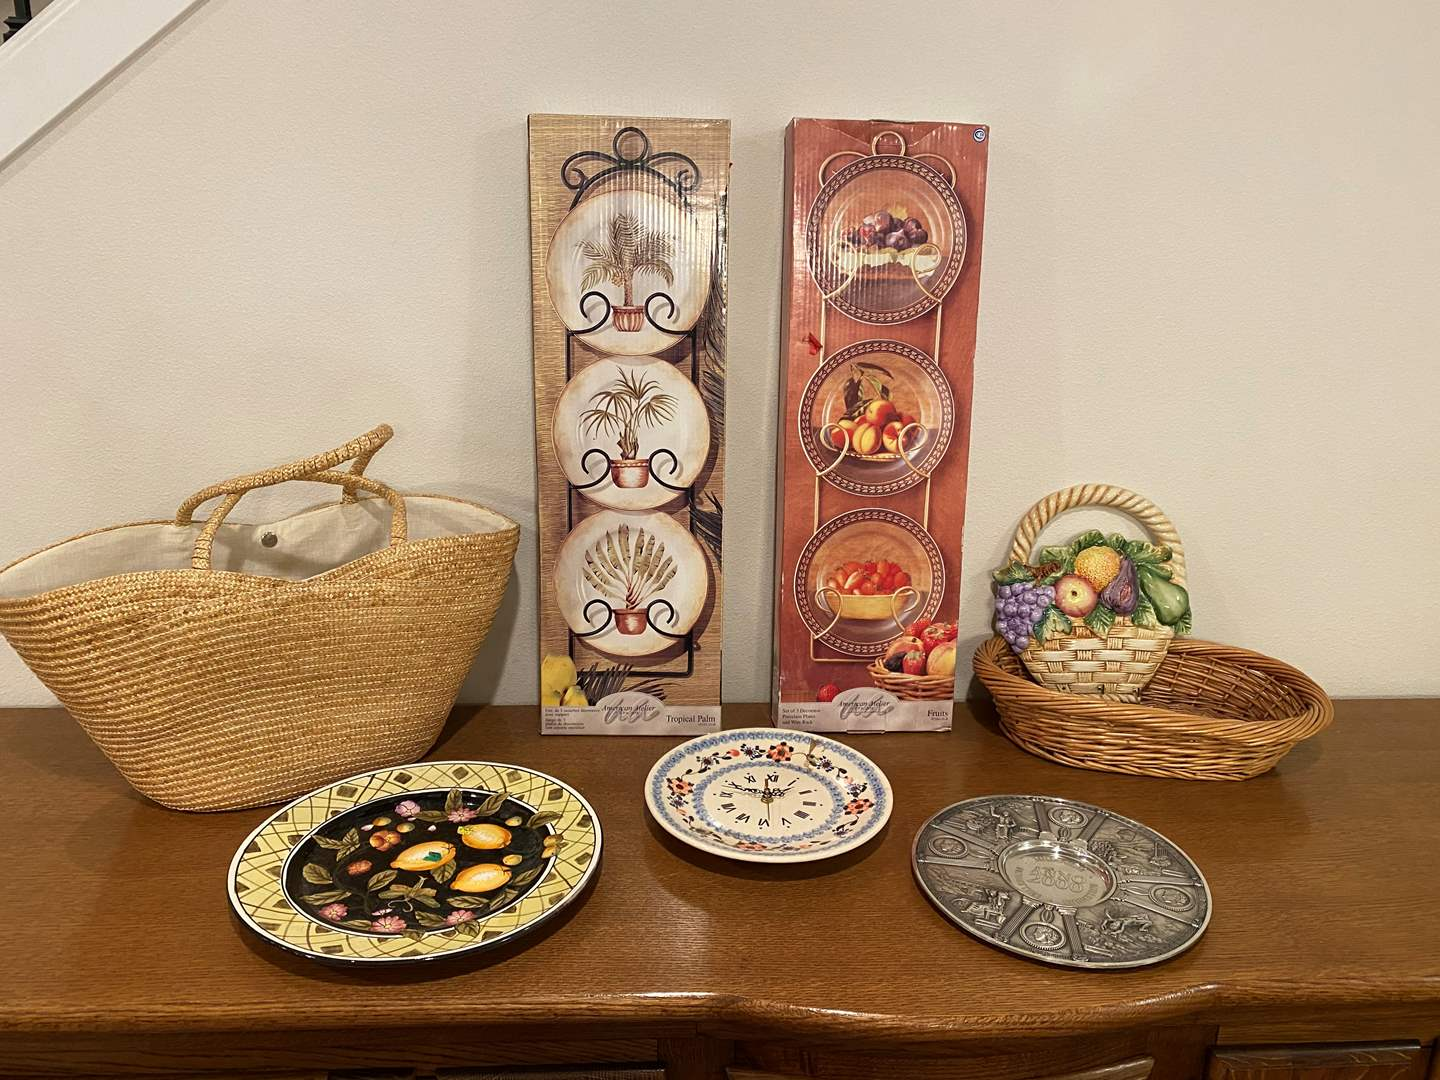 Lot # 199 - Two New in Box Plate Racks, Decor, Basket & More.. (main image)